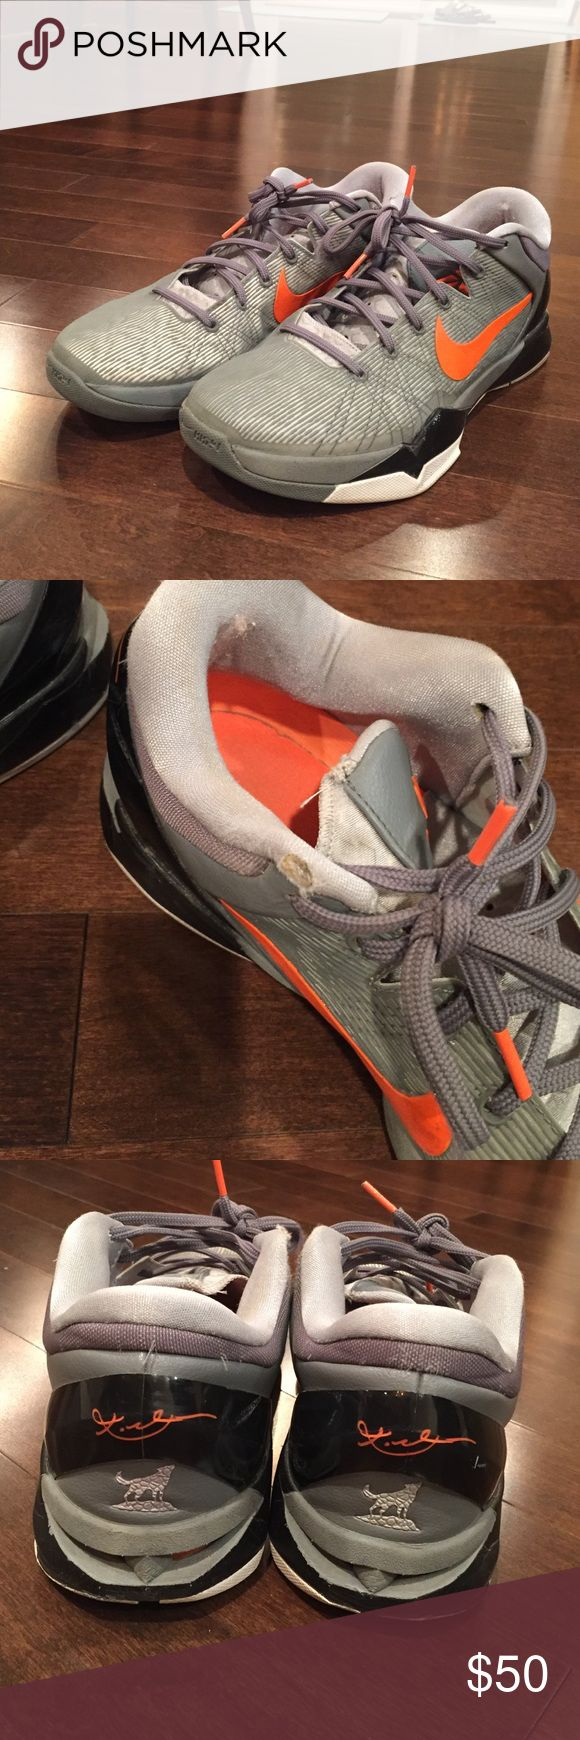 Men's Nike Kobe 7 Wolf Grey Used but in good condition. Only worn a few times. Size 10.5 men's. Perfect pair to add to your shoe collection. Small tear on right shoe(see picture) Nike Shoes Athletic Shoes